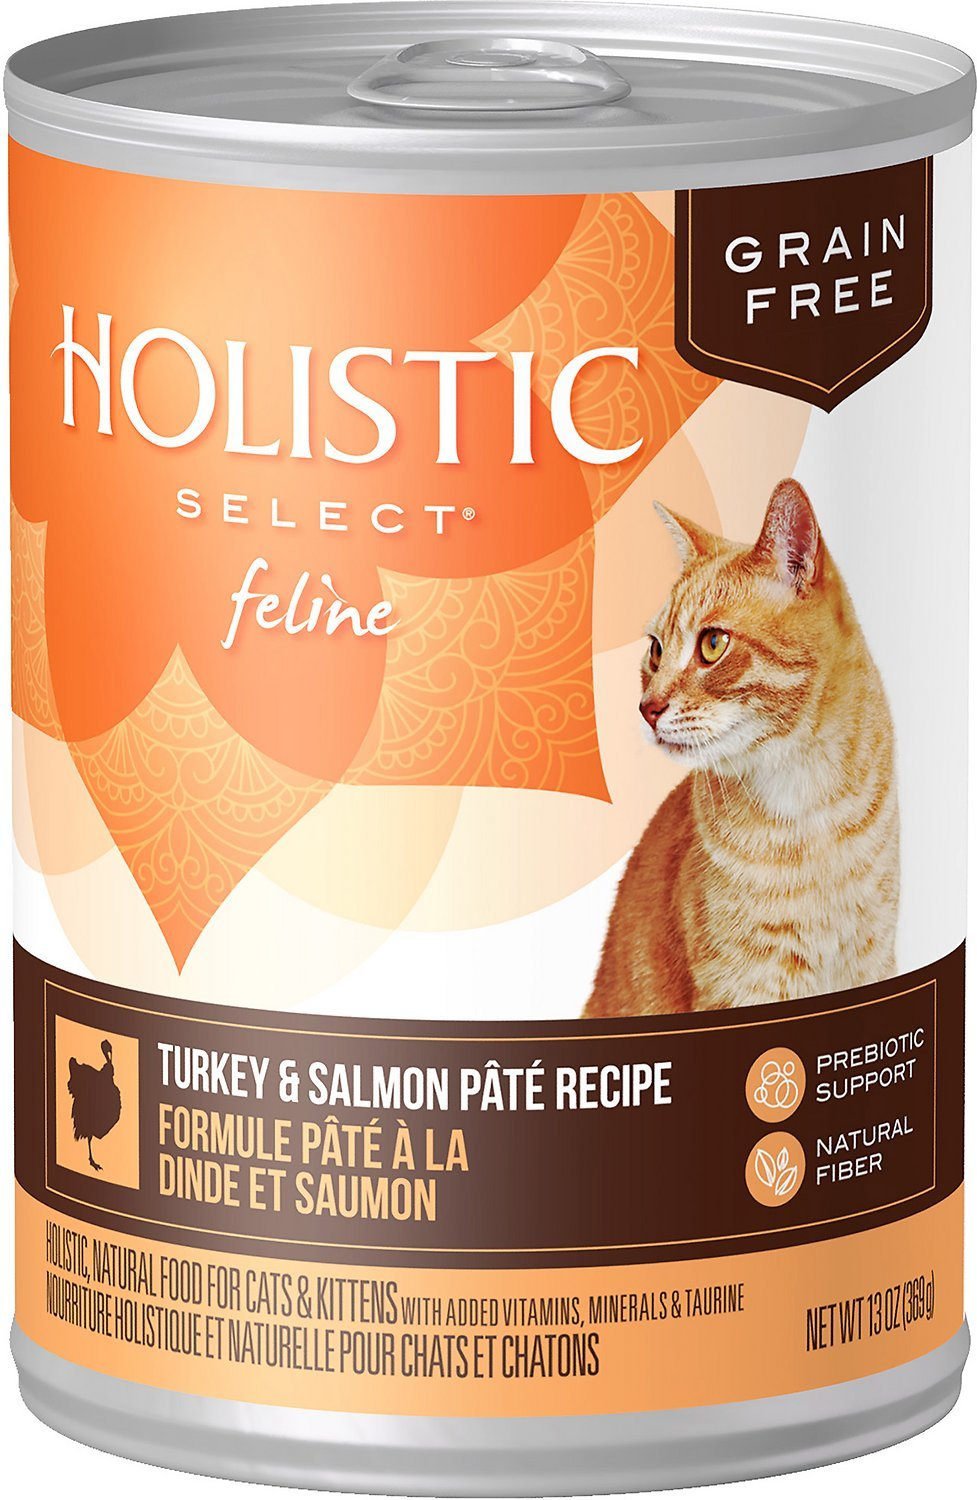 Best Grain Free Soft Food For Cats